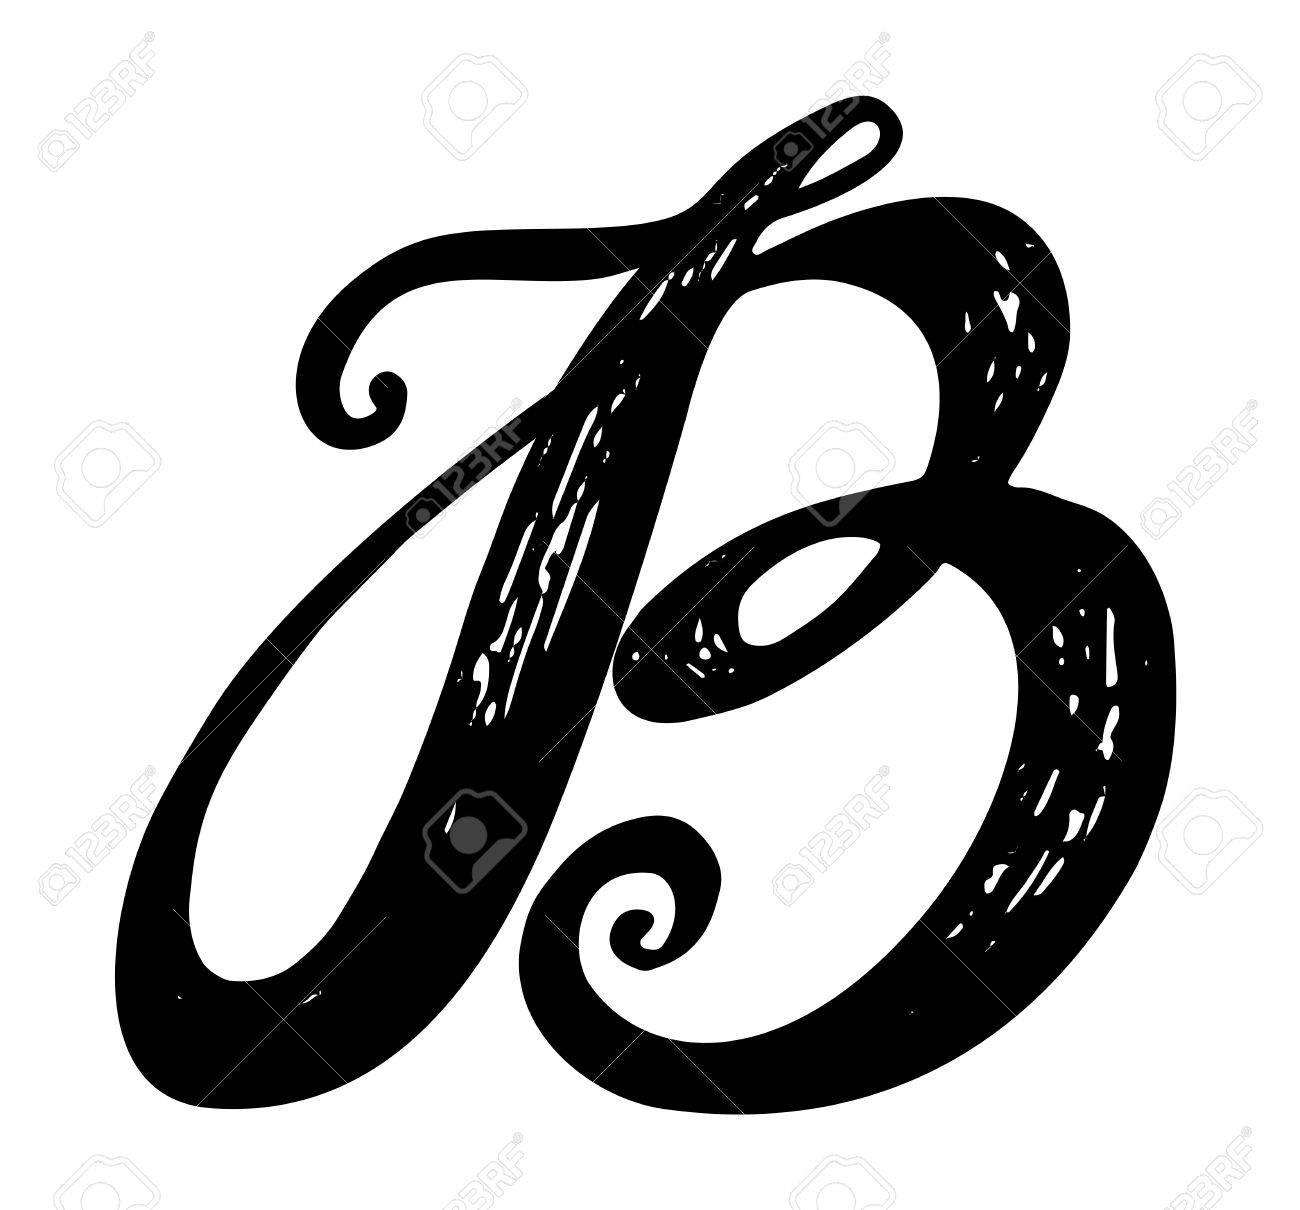 Letter B Calligraphy Alphabet Typeset Lettering Hand Drawn Capital And Lower